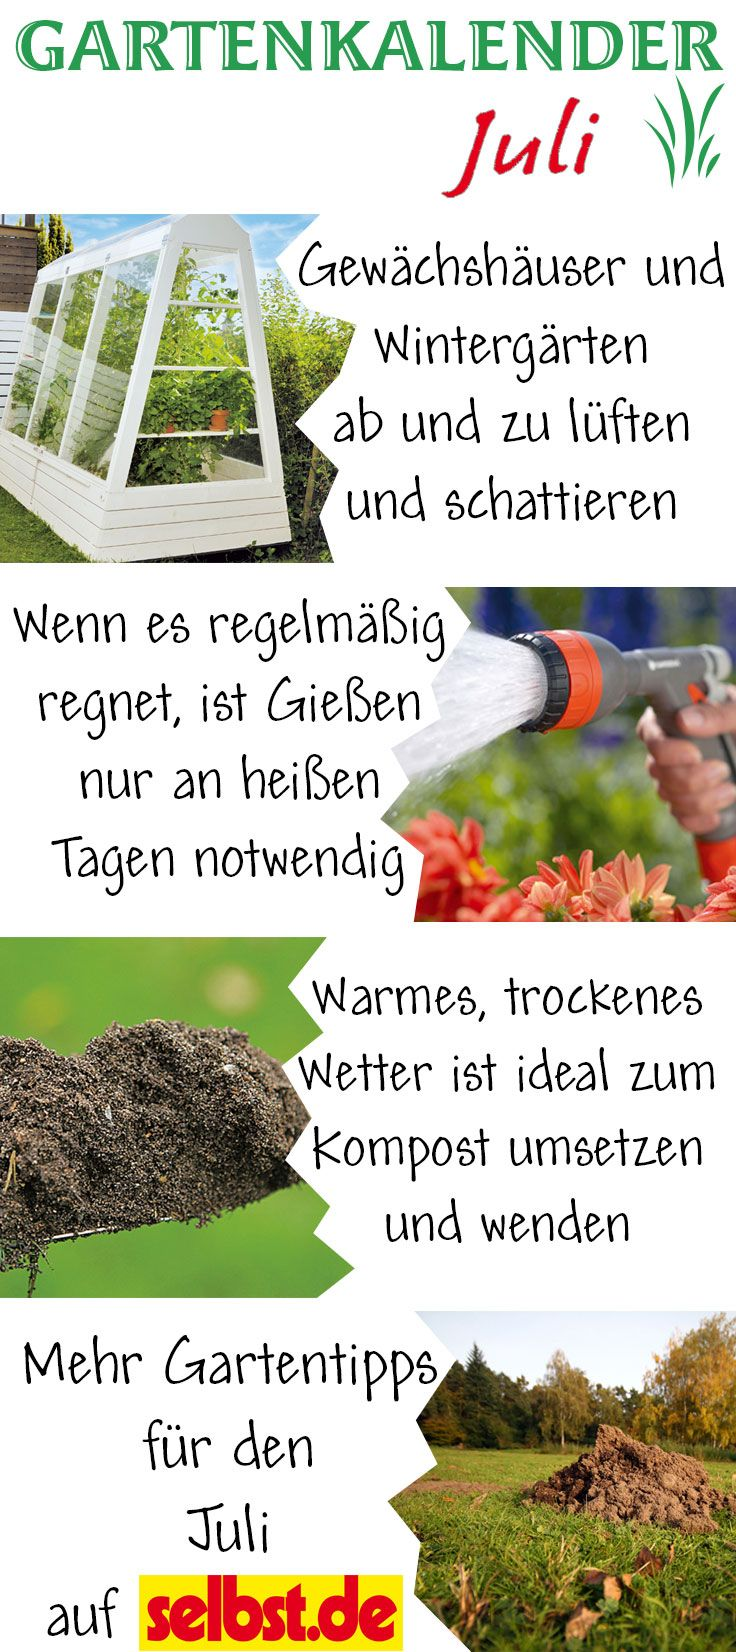 garten gr ne beete der gartenblog auf eat smarter pinterest gartenkalender wasser und. Black Bedroom Furniture Sets. Home Design Ideas